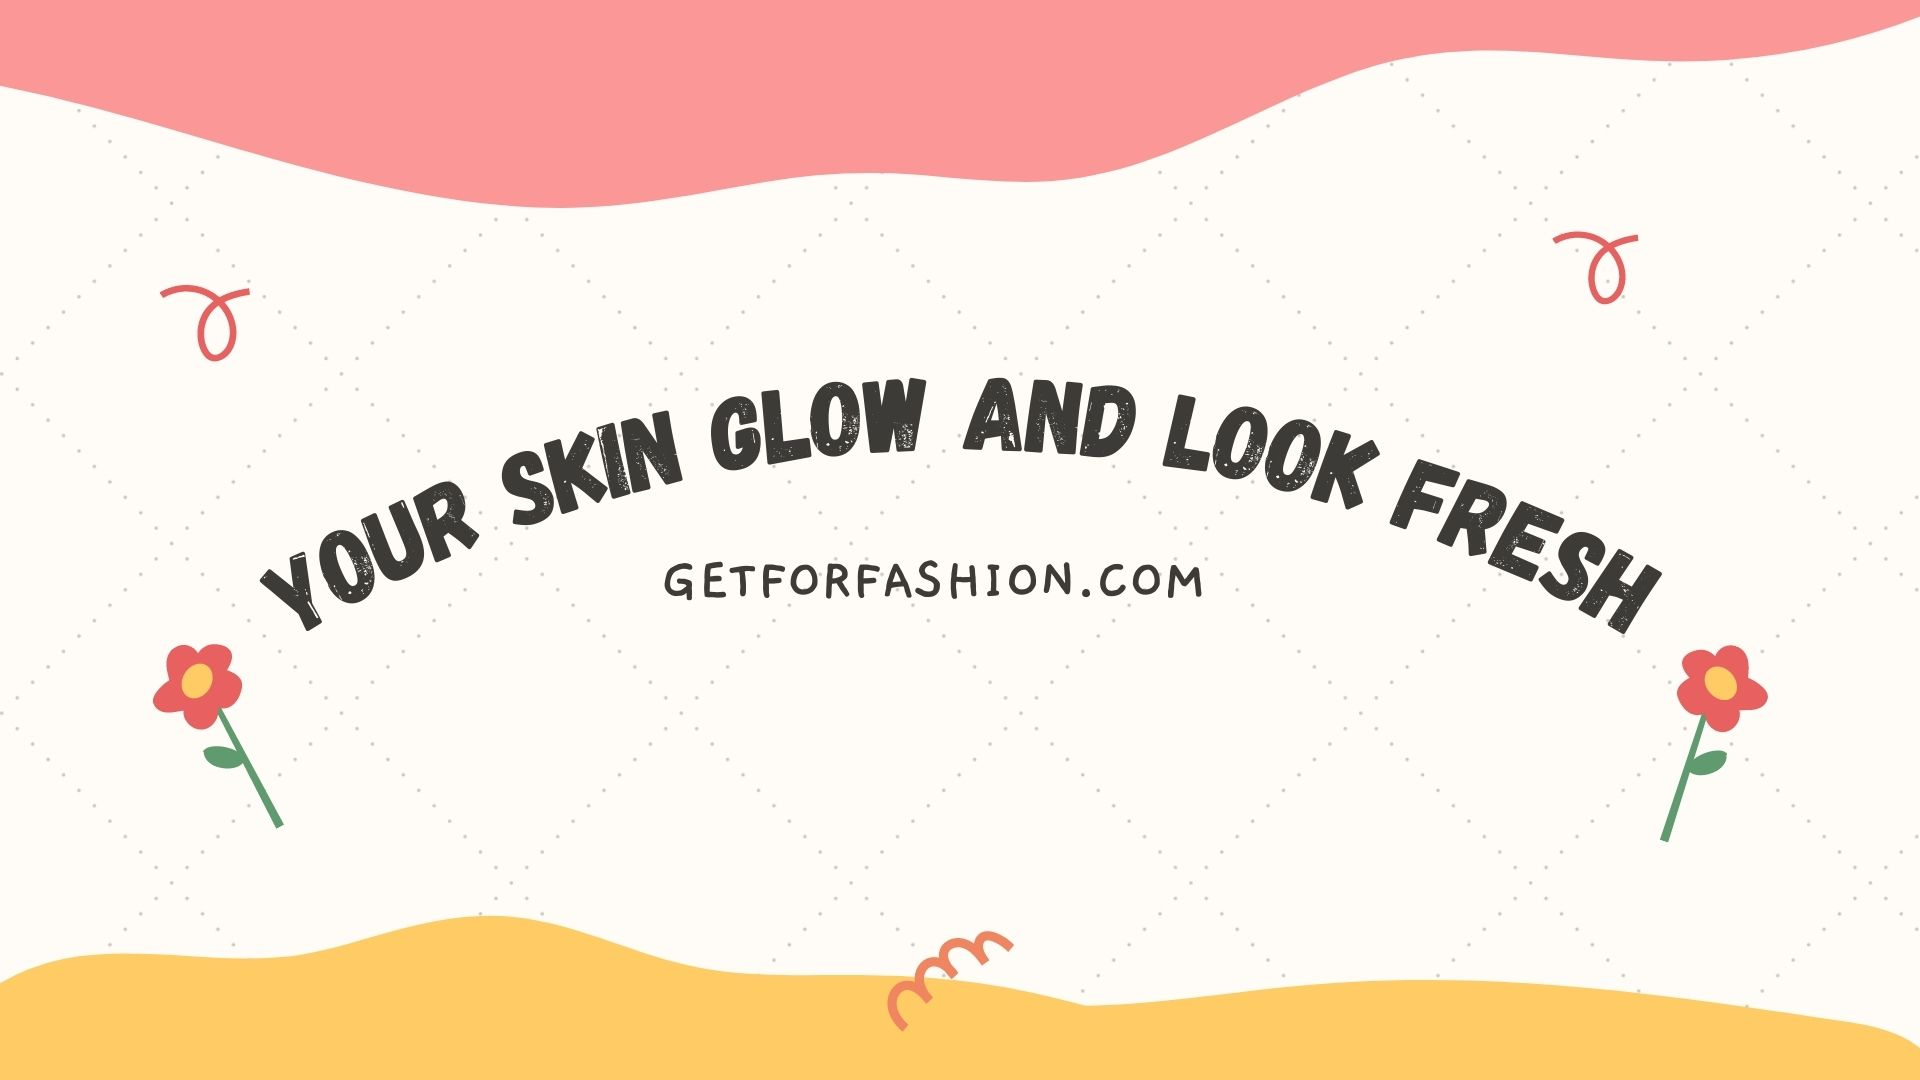 Your Skin Glow and Look Fresh